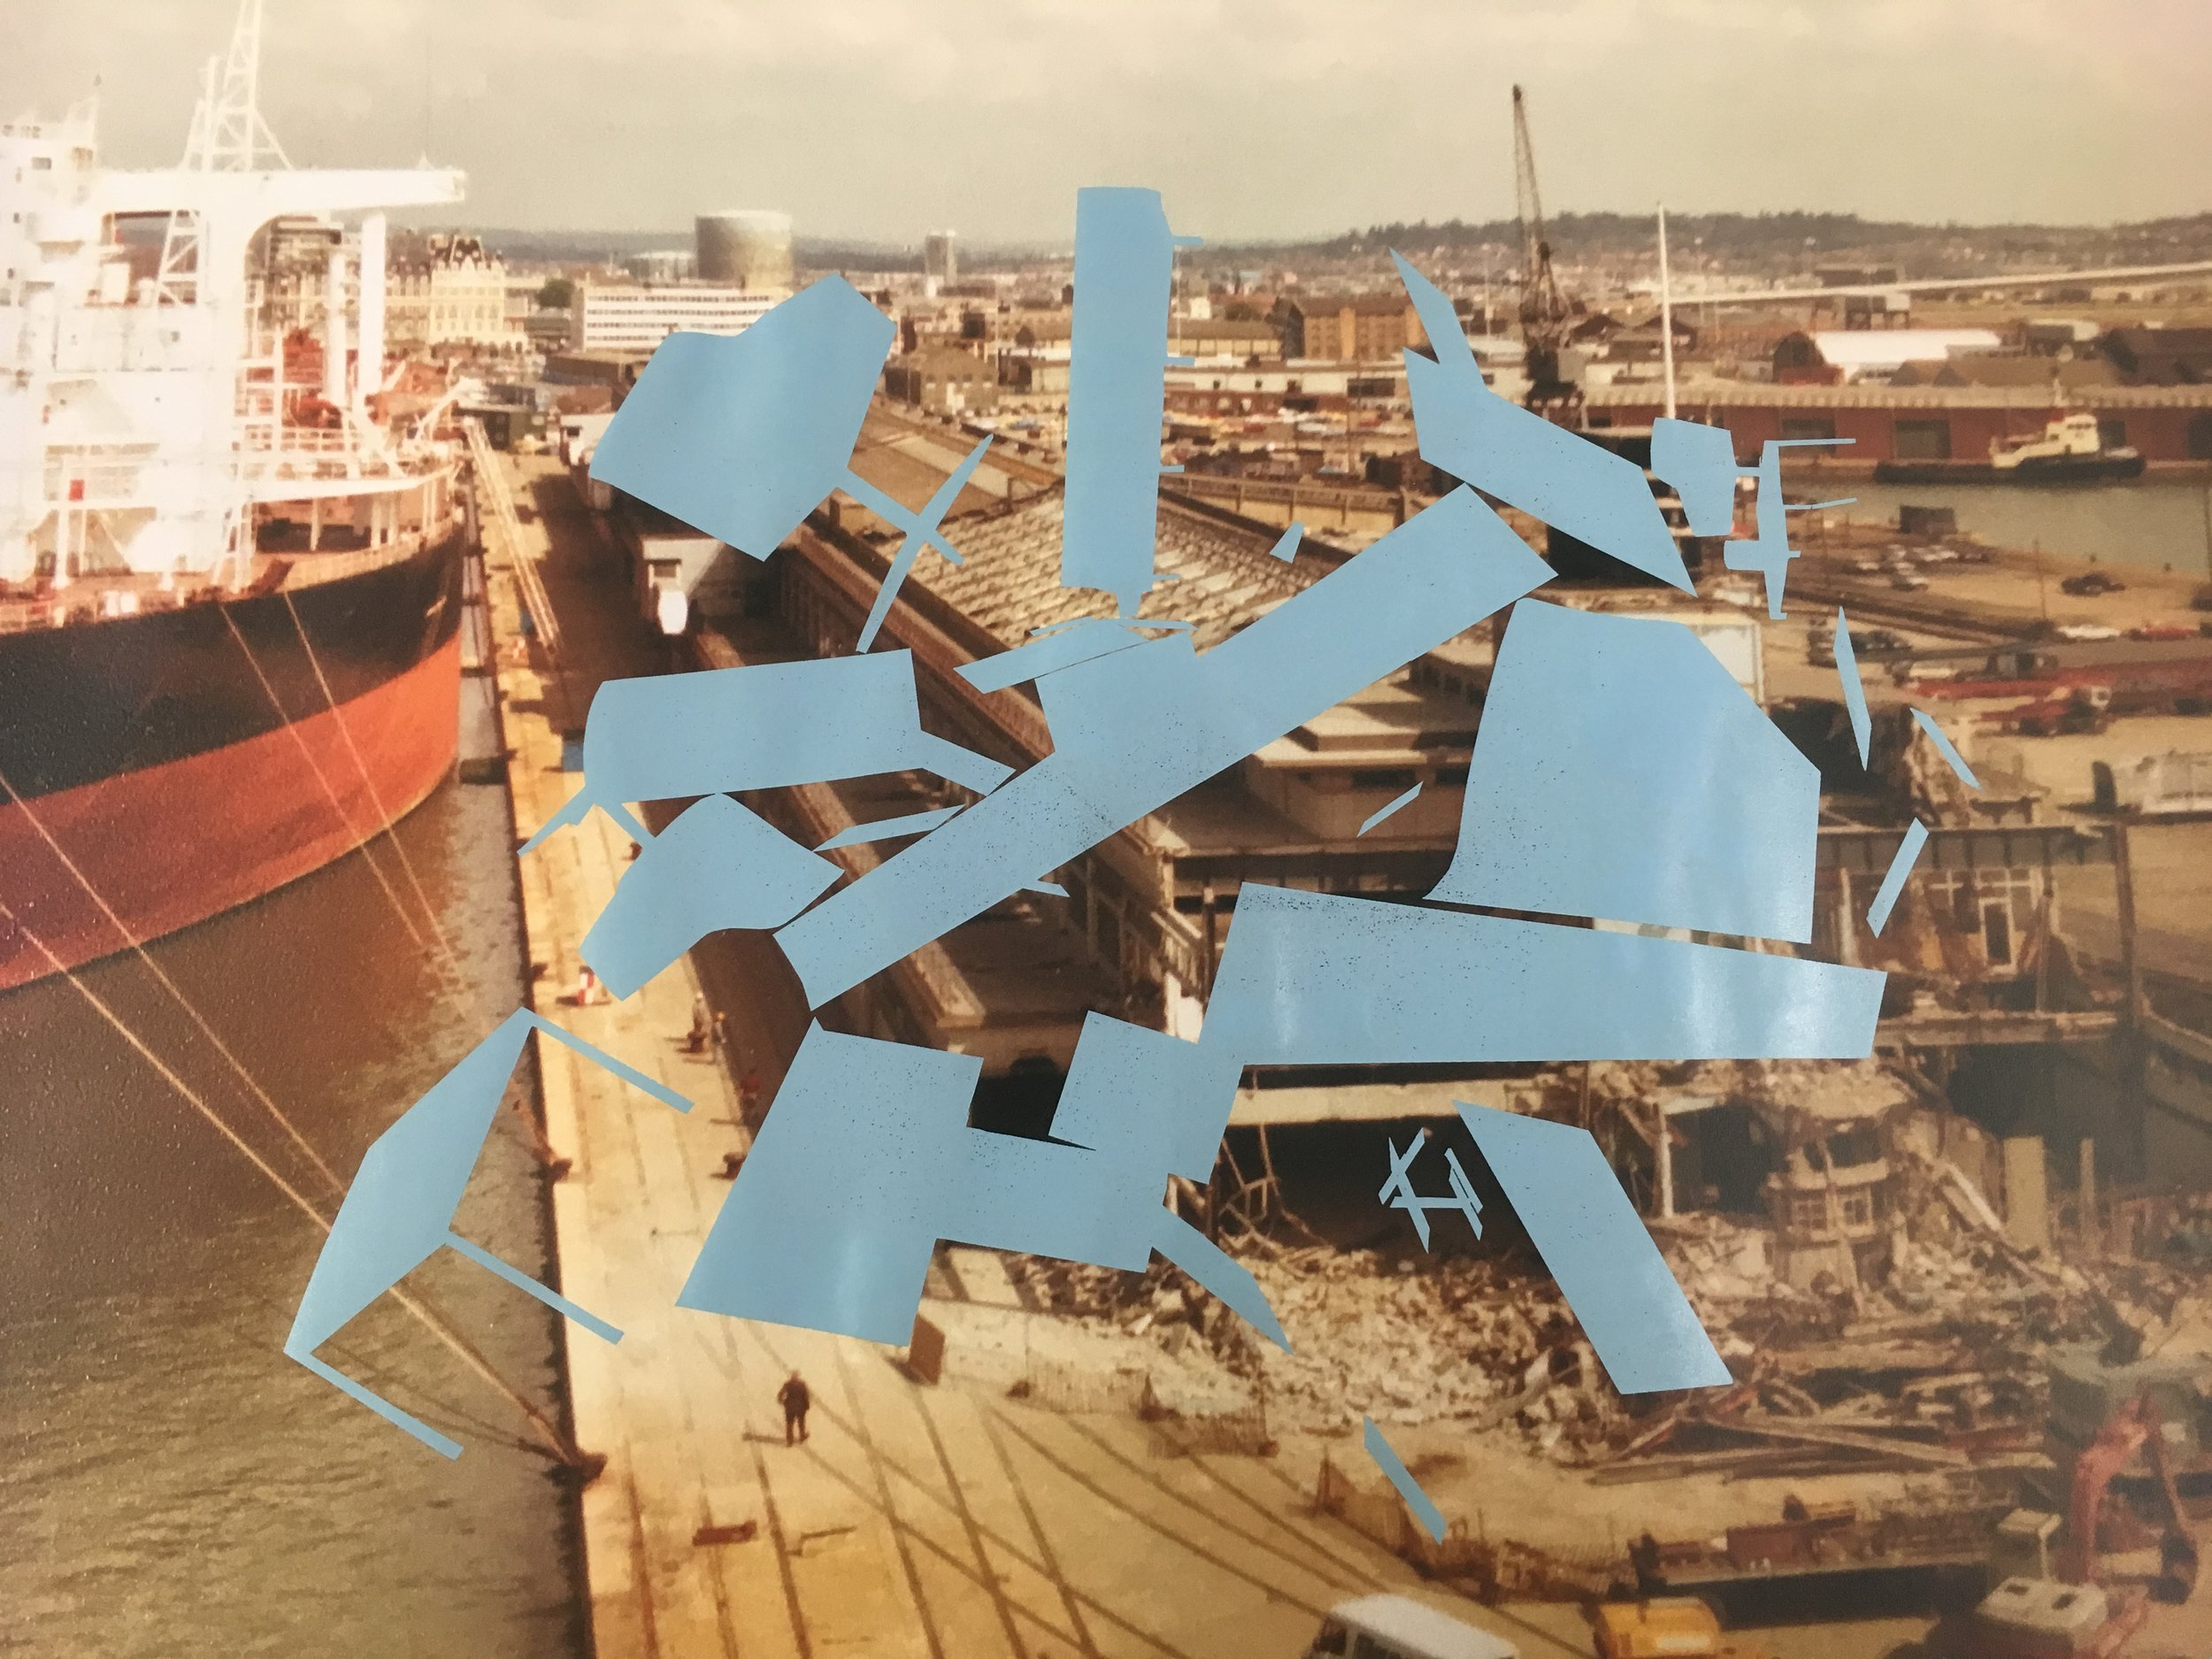 Susanna's illustrative research uses collage and archival photography